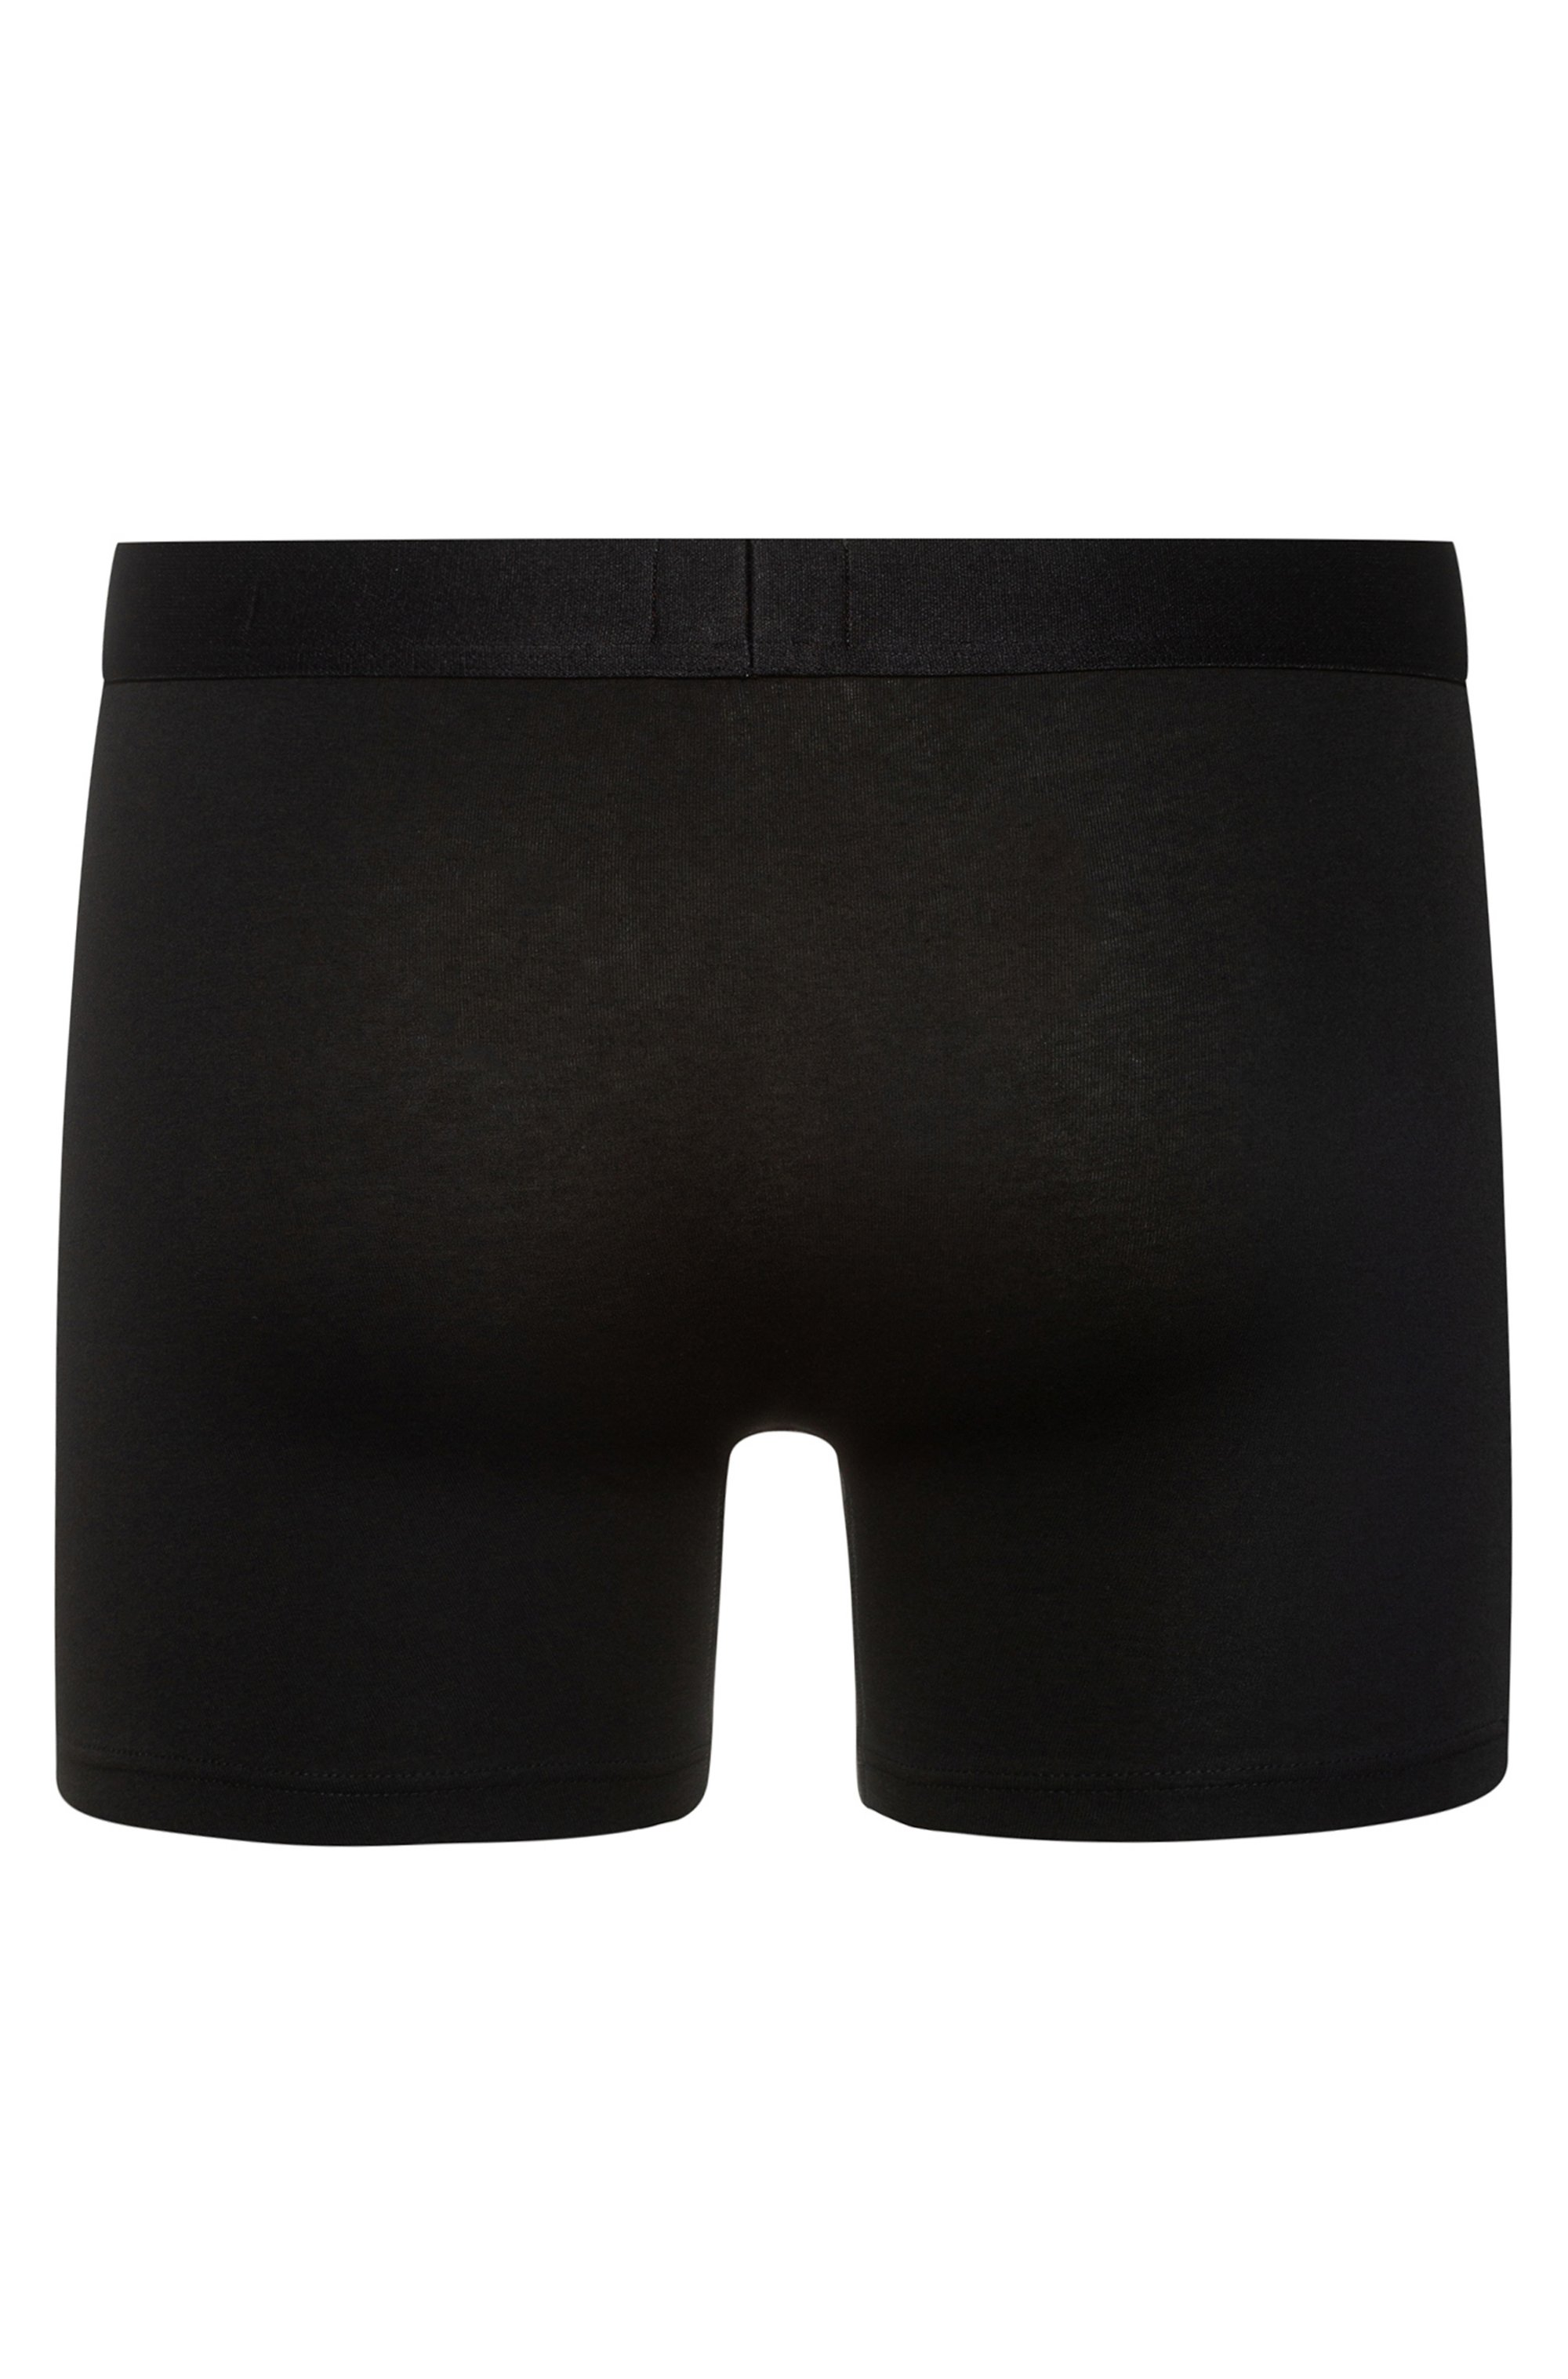 Two-pack of low-rise boxer briefs in stretch cotton